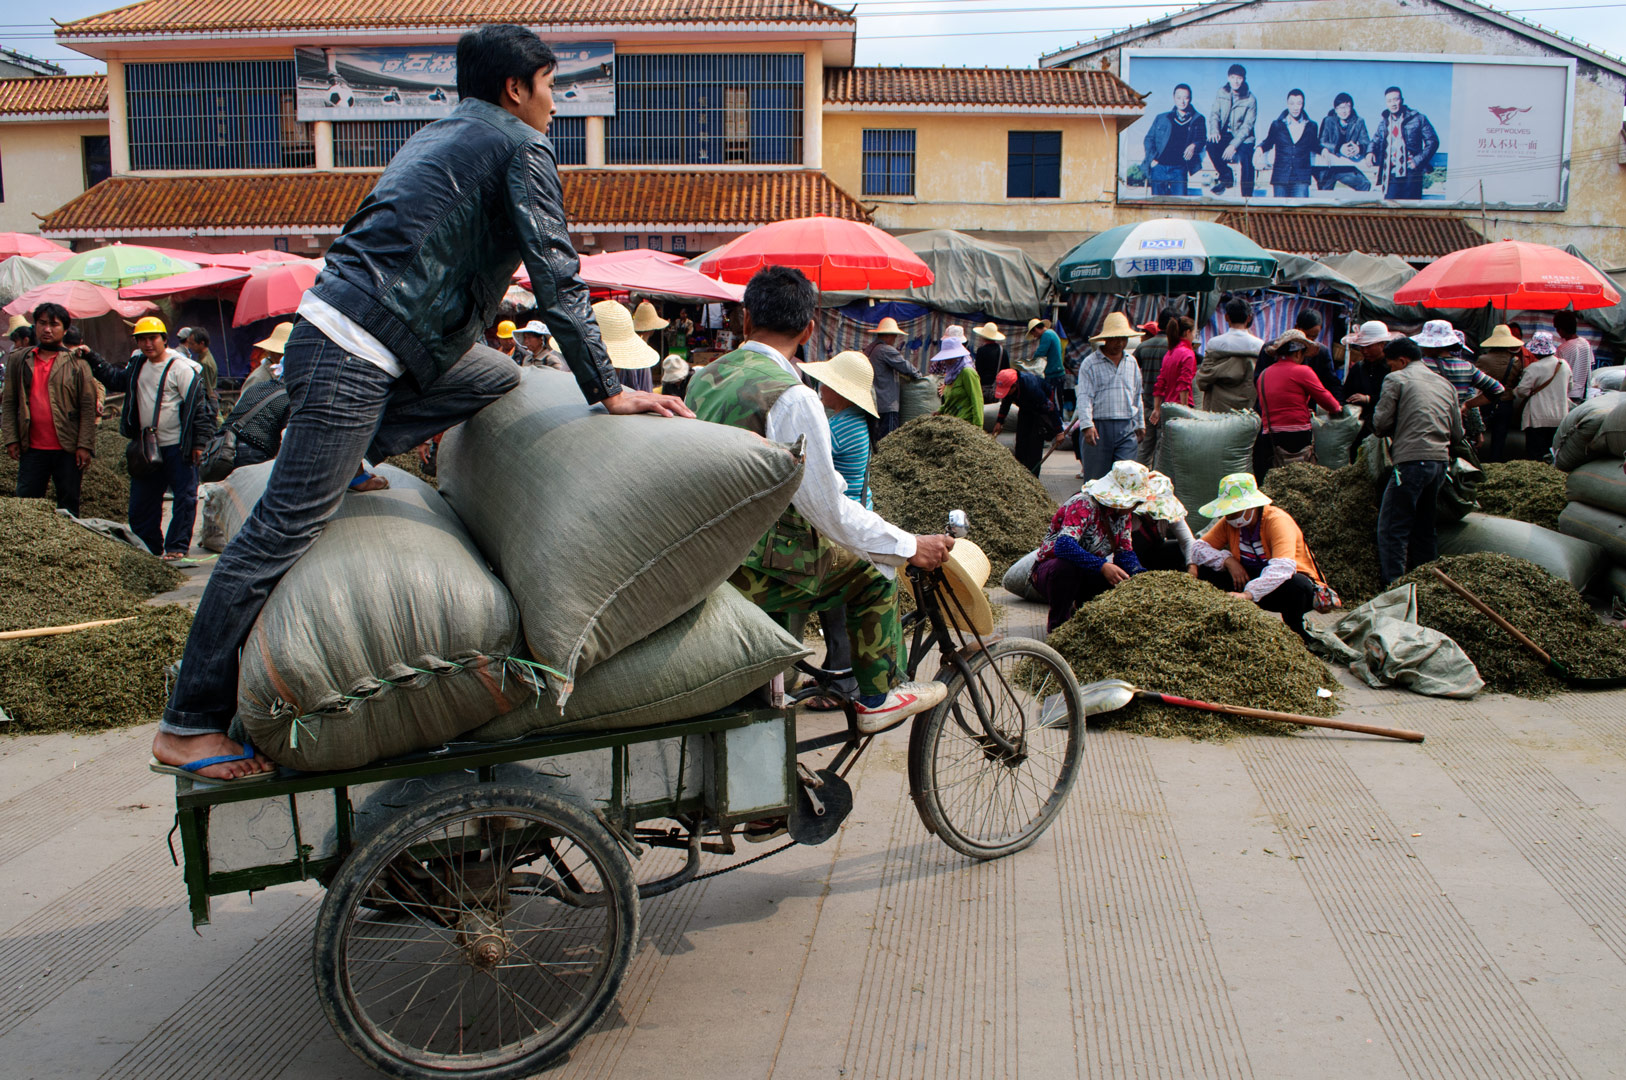 A cargobike transports goods to the market in China